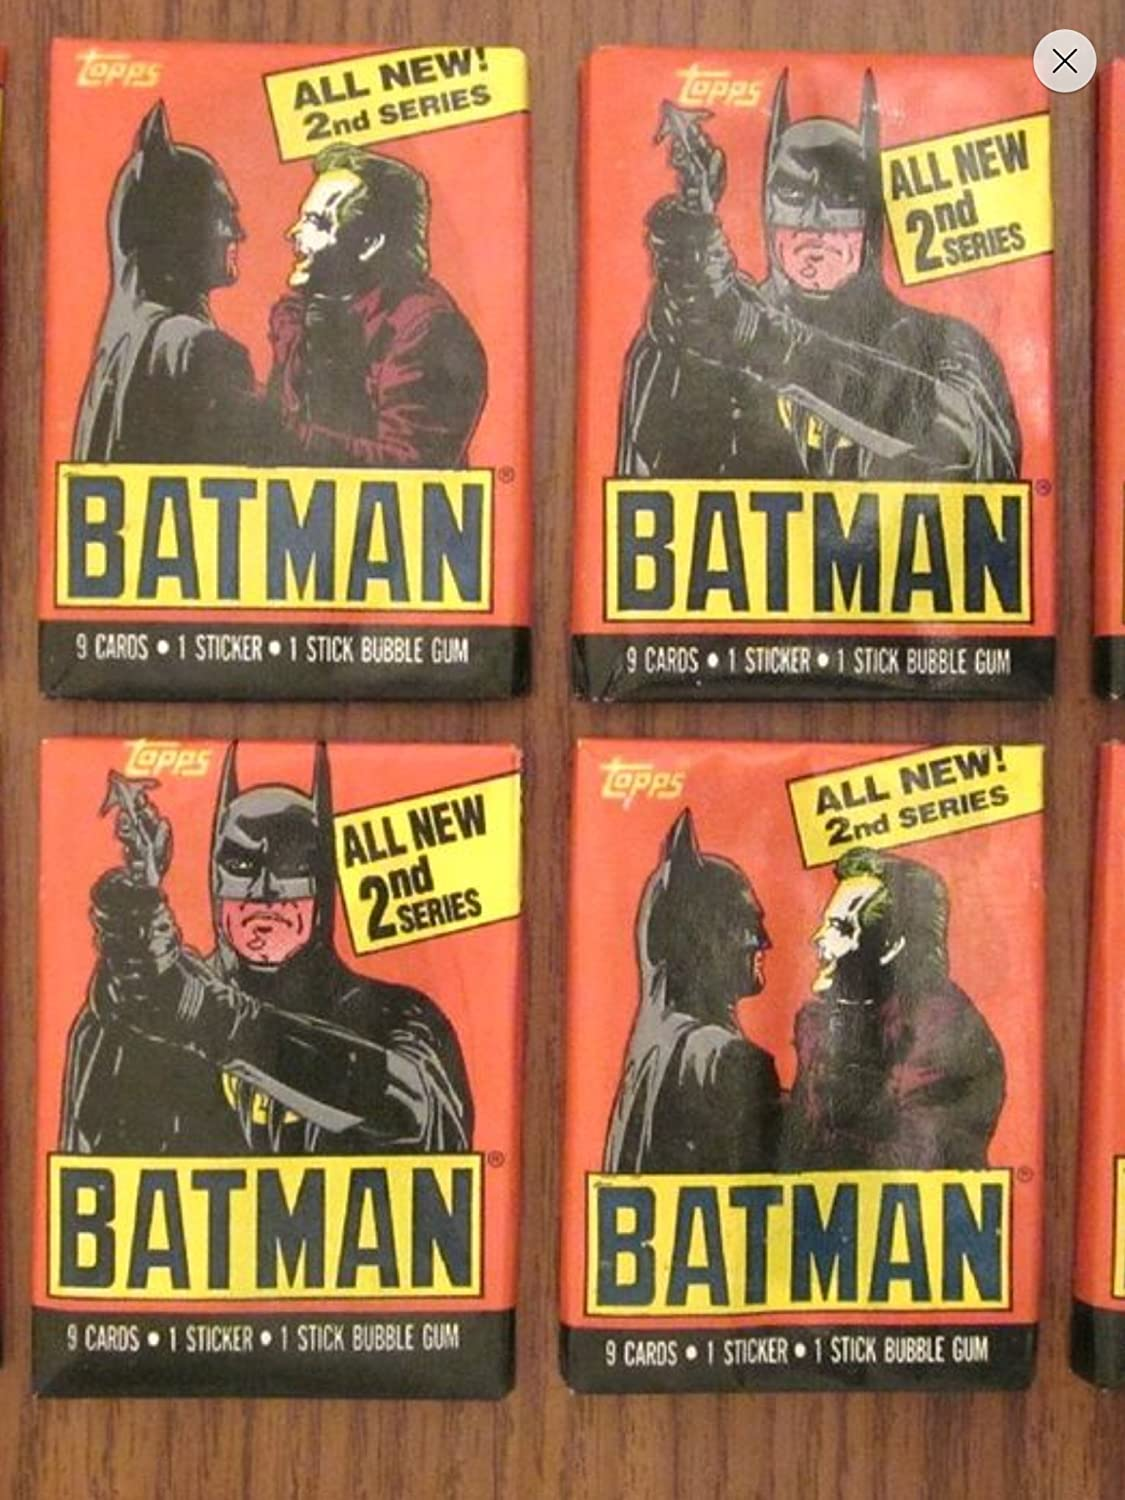 Batman Trading Cards (4) Unopened Wax Pack Lot Trading Cards and Stickers 1989 Topps 2nd Series Non-sport